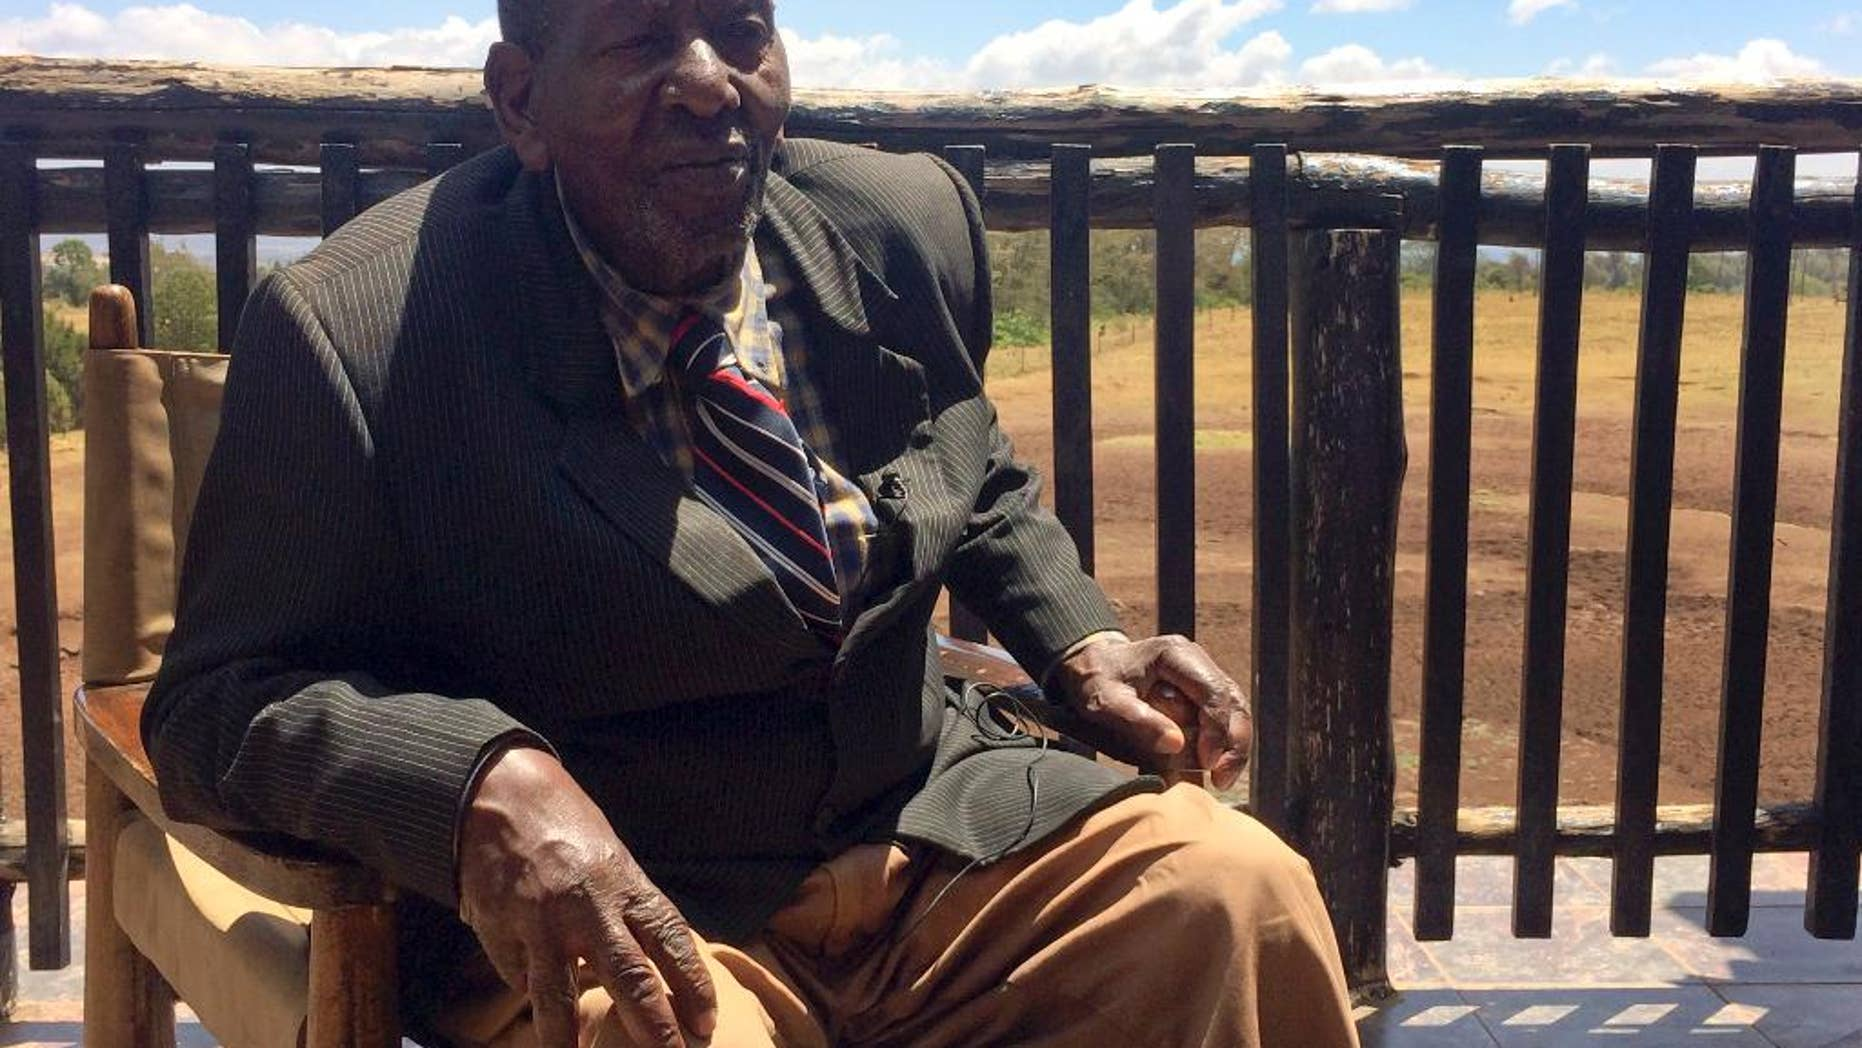 In this photo taken Sunday, Feb. 5, 2017, Nahashon Mureithi, 89, recollects his time as a porter and guide for Britain's Queen Elizabeth II, then Princess Elizabeth, at the Treetops hotel near Nyeri, in Kenya. Sixty-five years ago, Princess Elizabeth went up into the treehouse safari lodge watching elephants below, and was informed that her father had died and she descended from the treehouse a queen. (AP Photo/Andrew Njuguna)